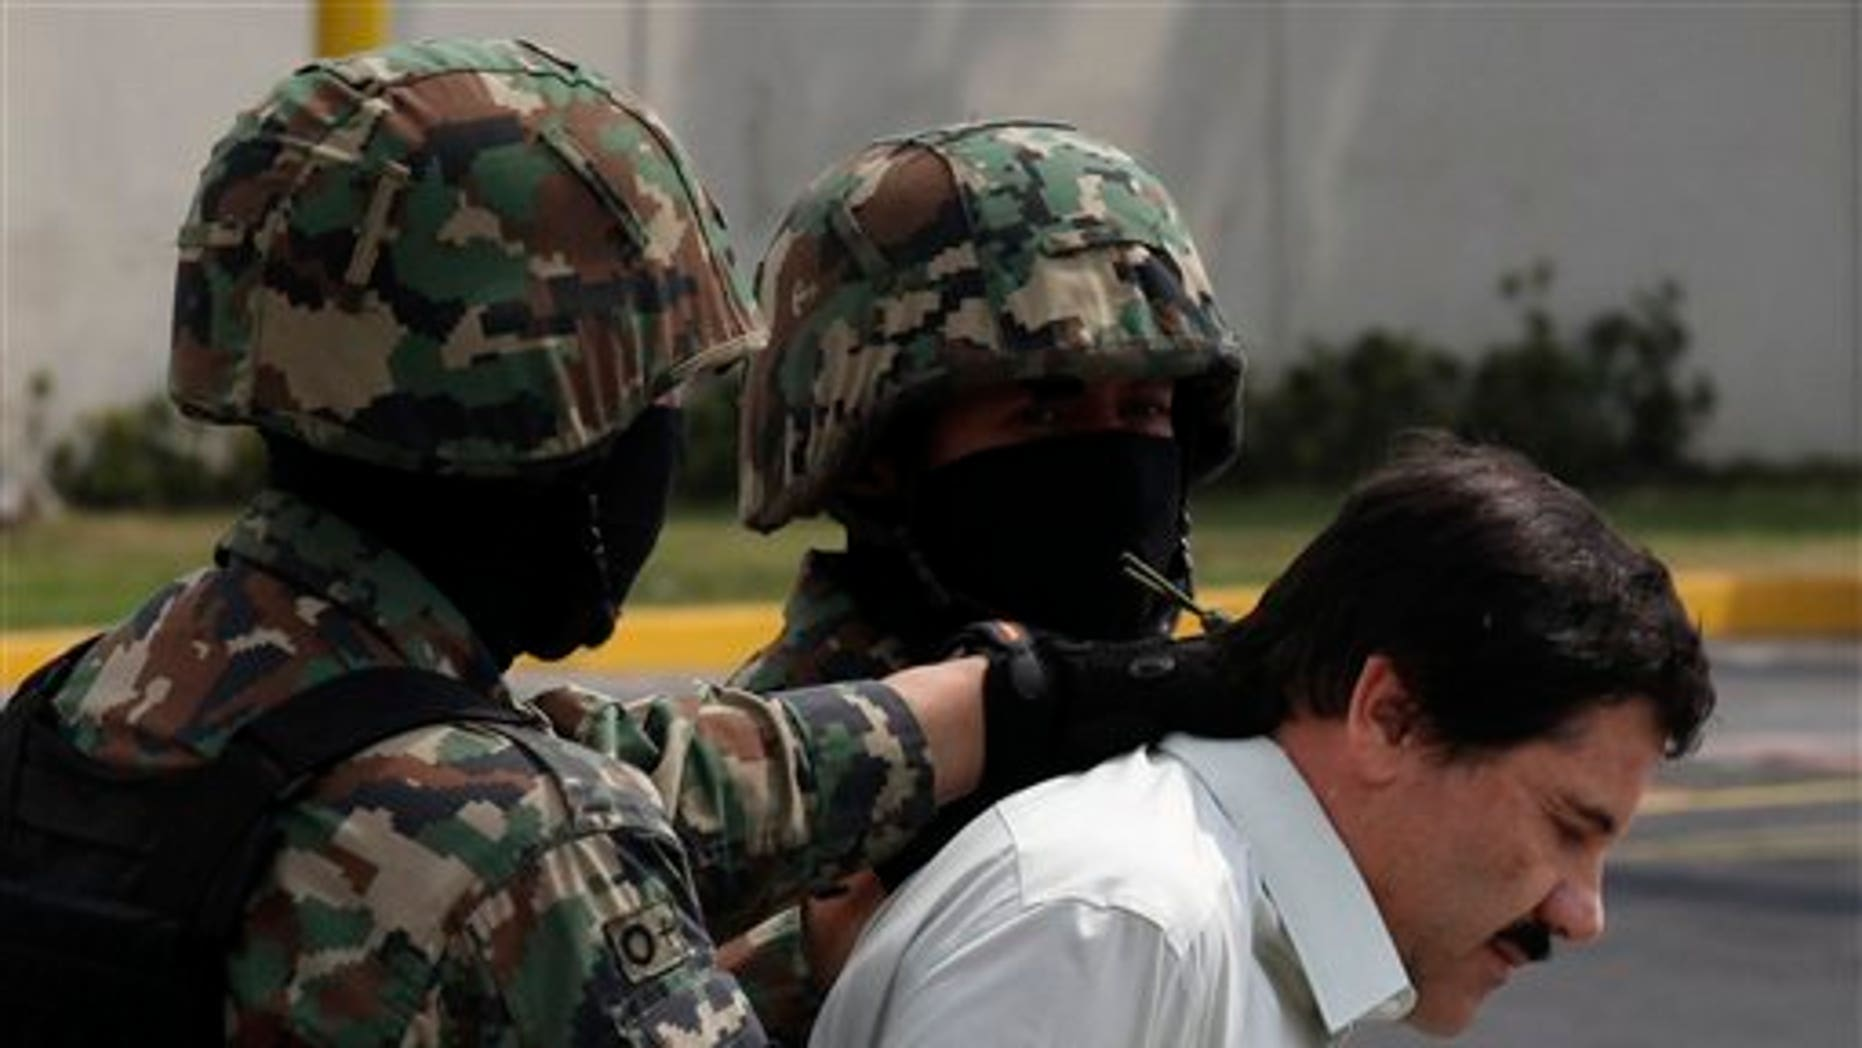 """Feb. 22, 2014: Joaquin """"El Chapo"""" Guzman, in handcuffs, is escorted to a helicopter by Mexican navy marines in Mexico City, Mexico."""